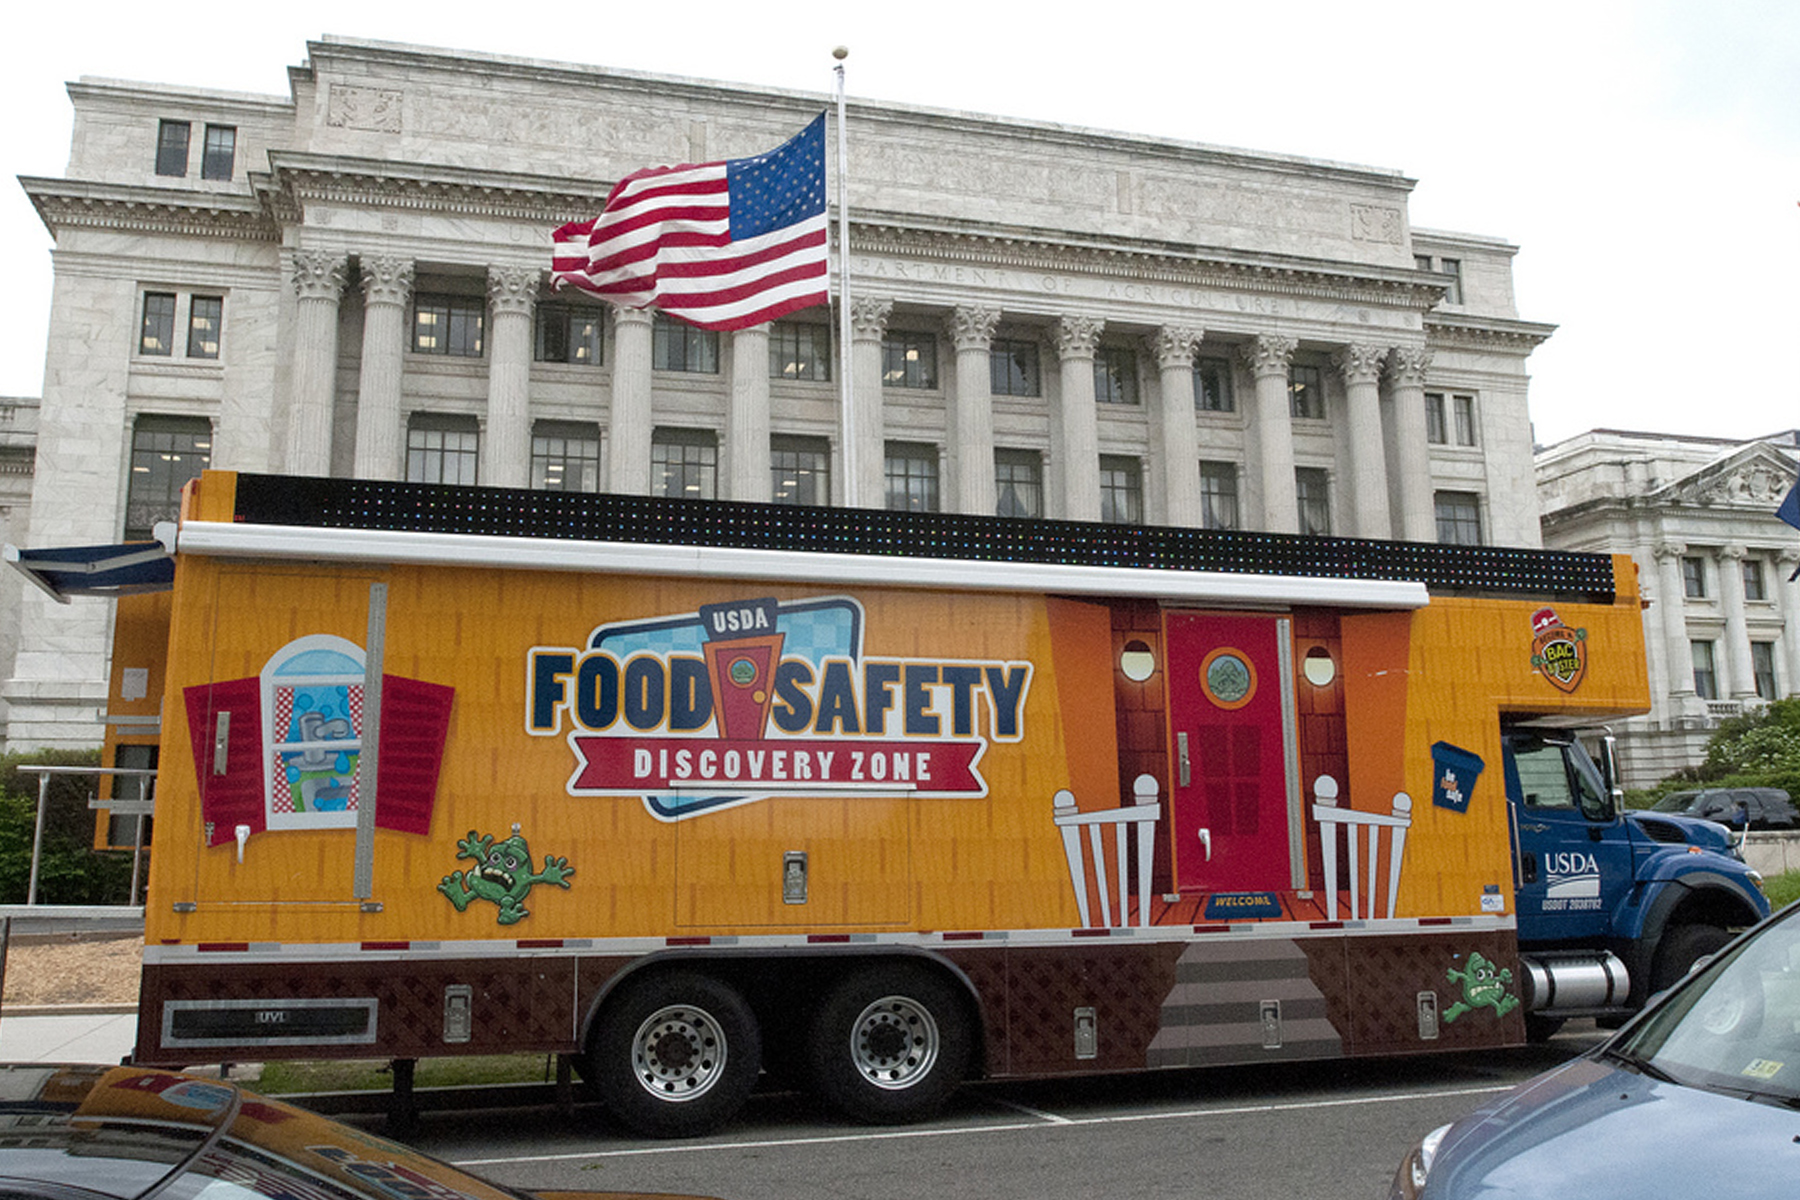 A picture of the Food Safety Discovery Zone, a forty-foot truck that contains an interactive exhibit about food safety.  It is yellow and has a logo on the side. It is in front of the Department of Agriculture building.